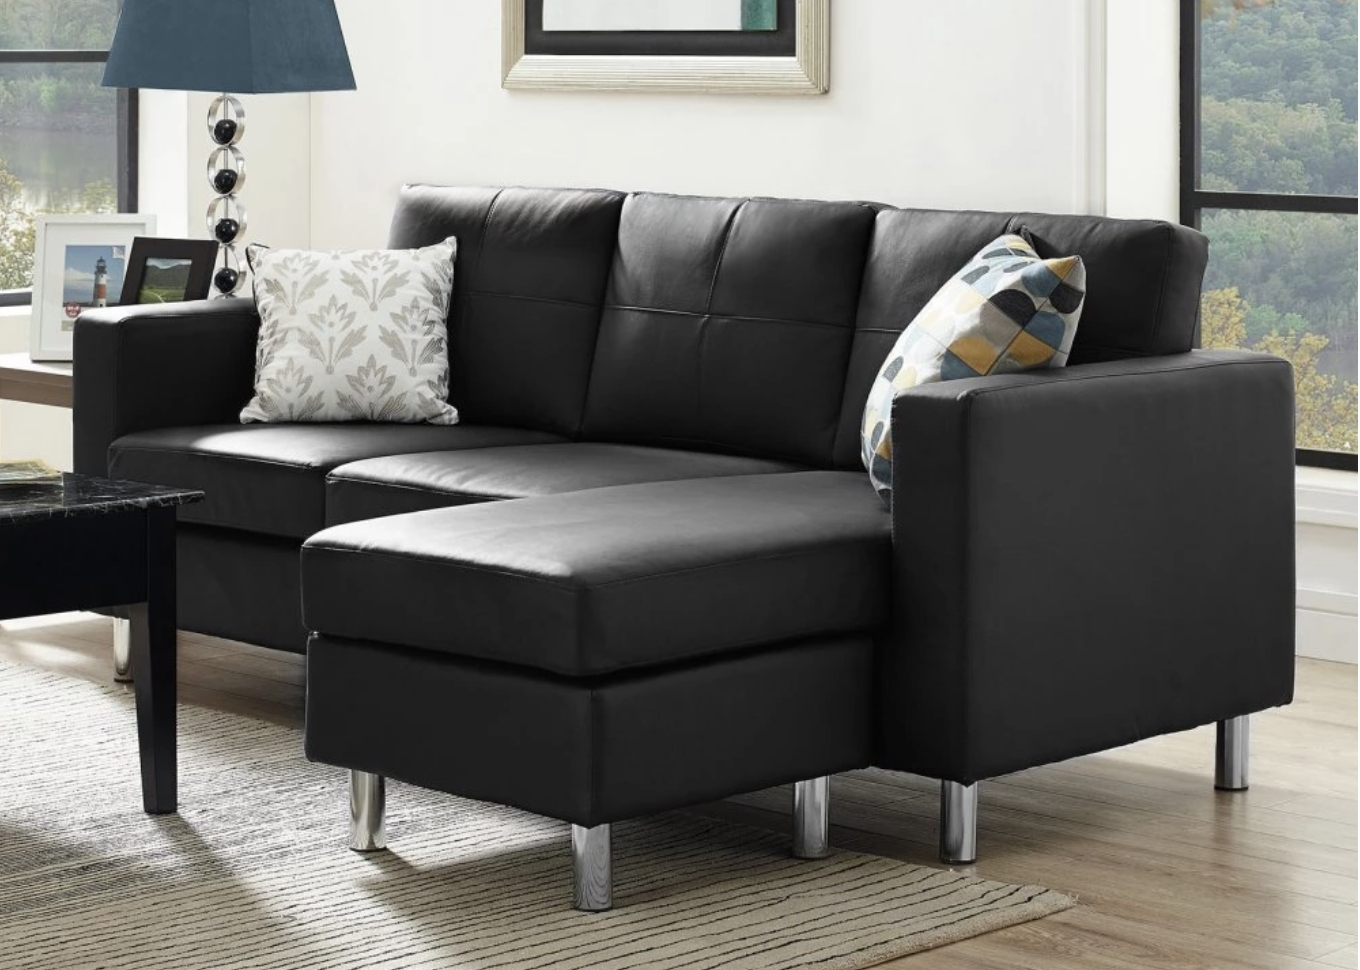 110X90 Sectional Sofas Within Most Recently Released 75 Modern Sectional Sofas For Small Spaces (2018) (View 5 of 20)